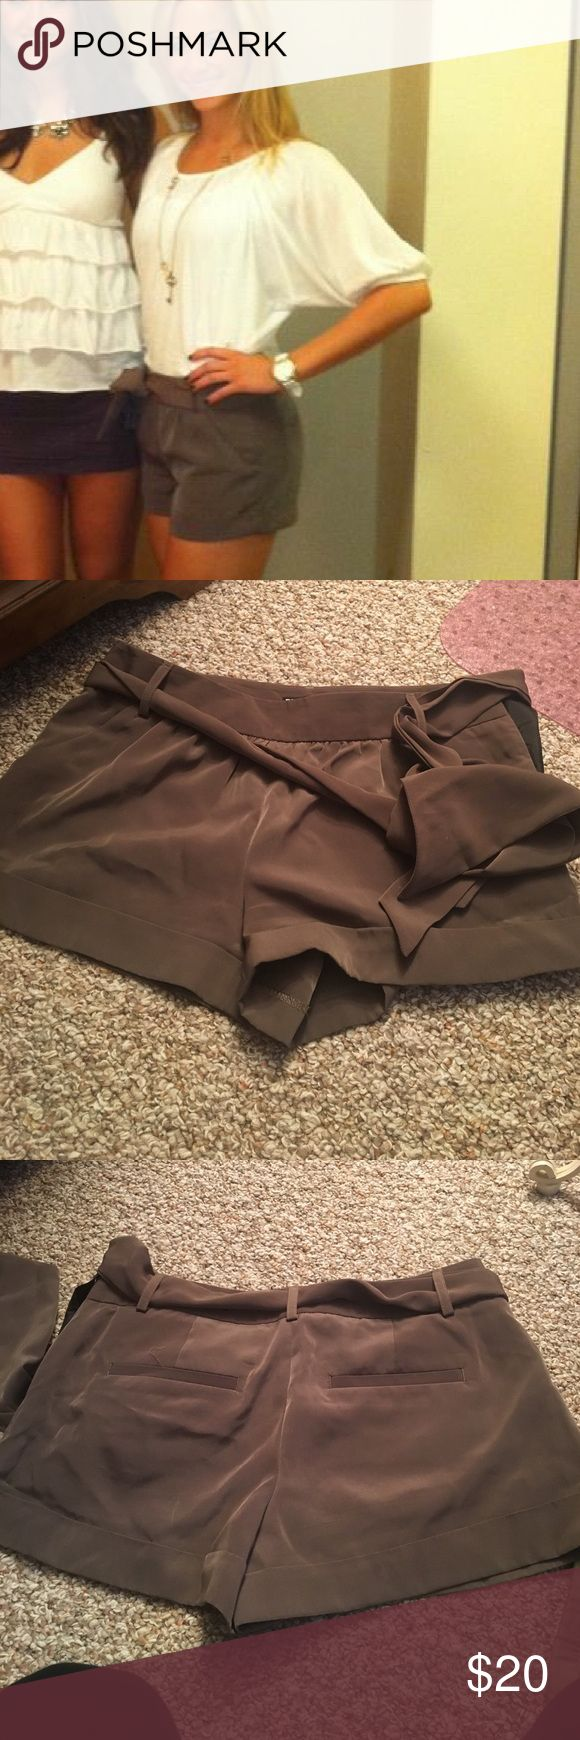 NEW condition Express shorts with tie belt Olive green/grey colored polyester shorts from Express. Button and zip side closure with tie belt. Express Shorts